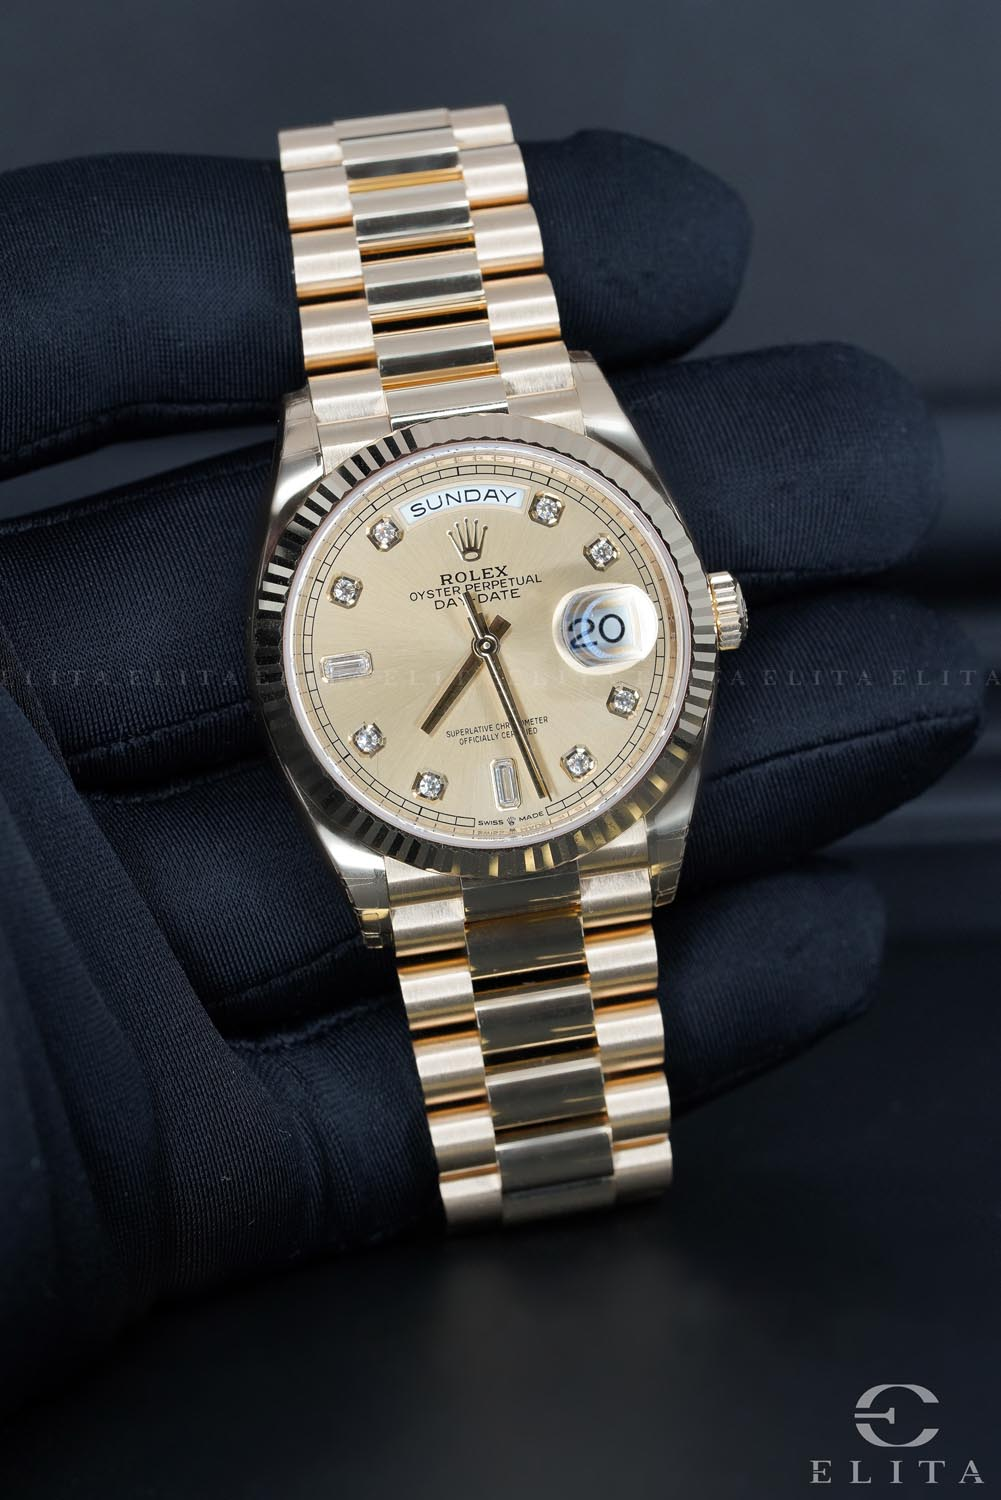 Day-Date 36 128238-0008 Champagne Diamond Dial